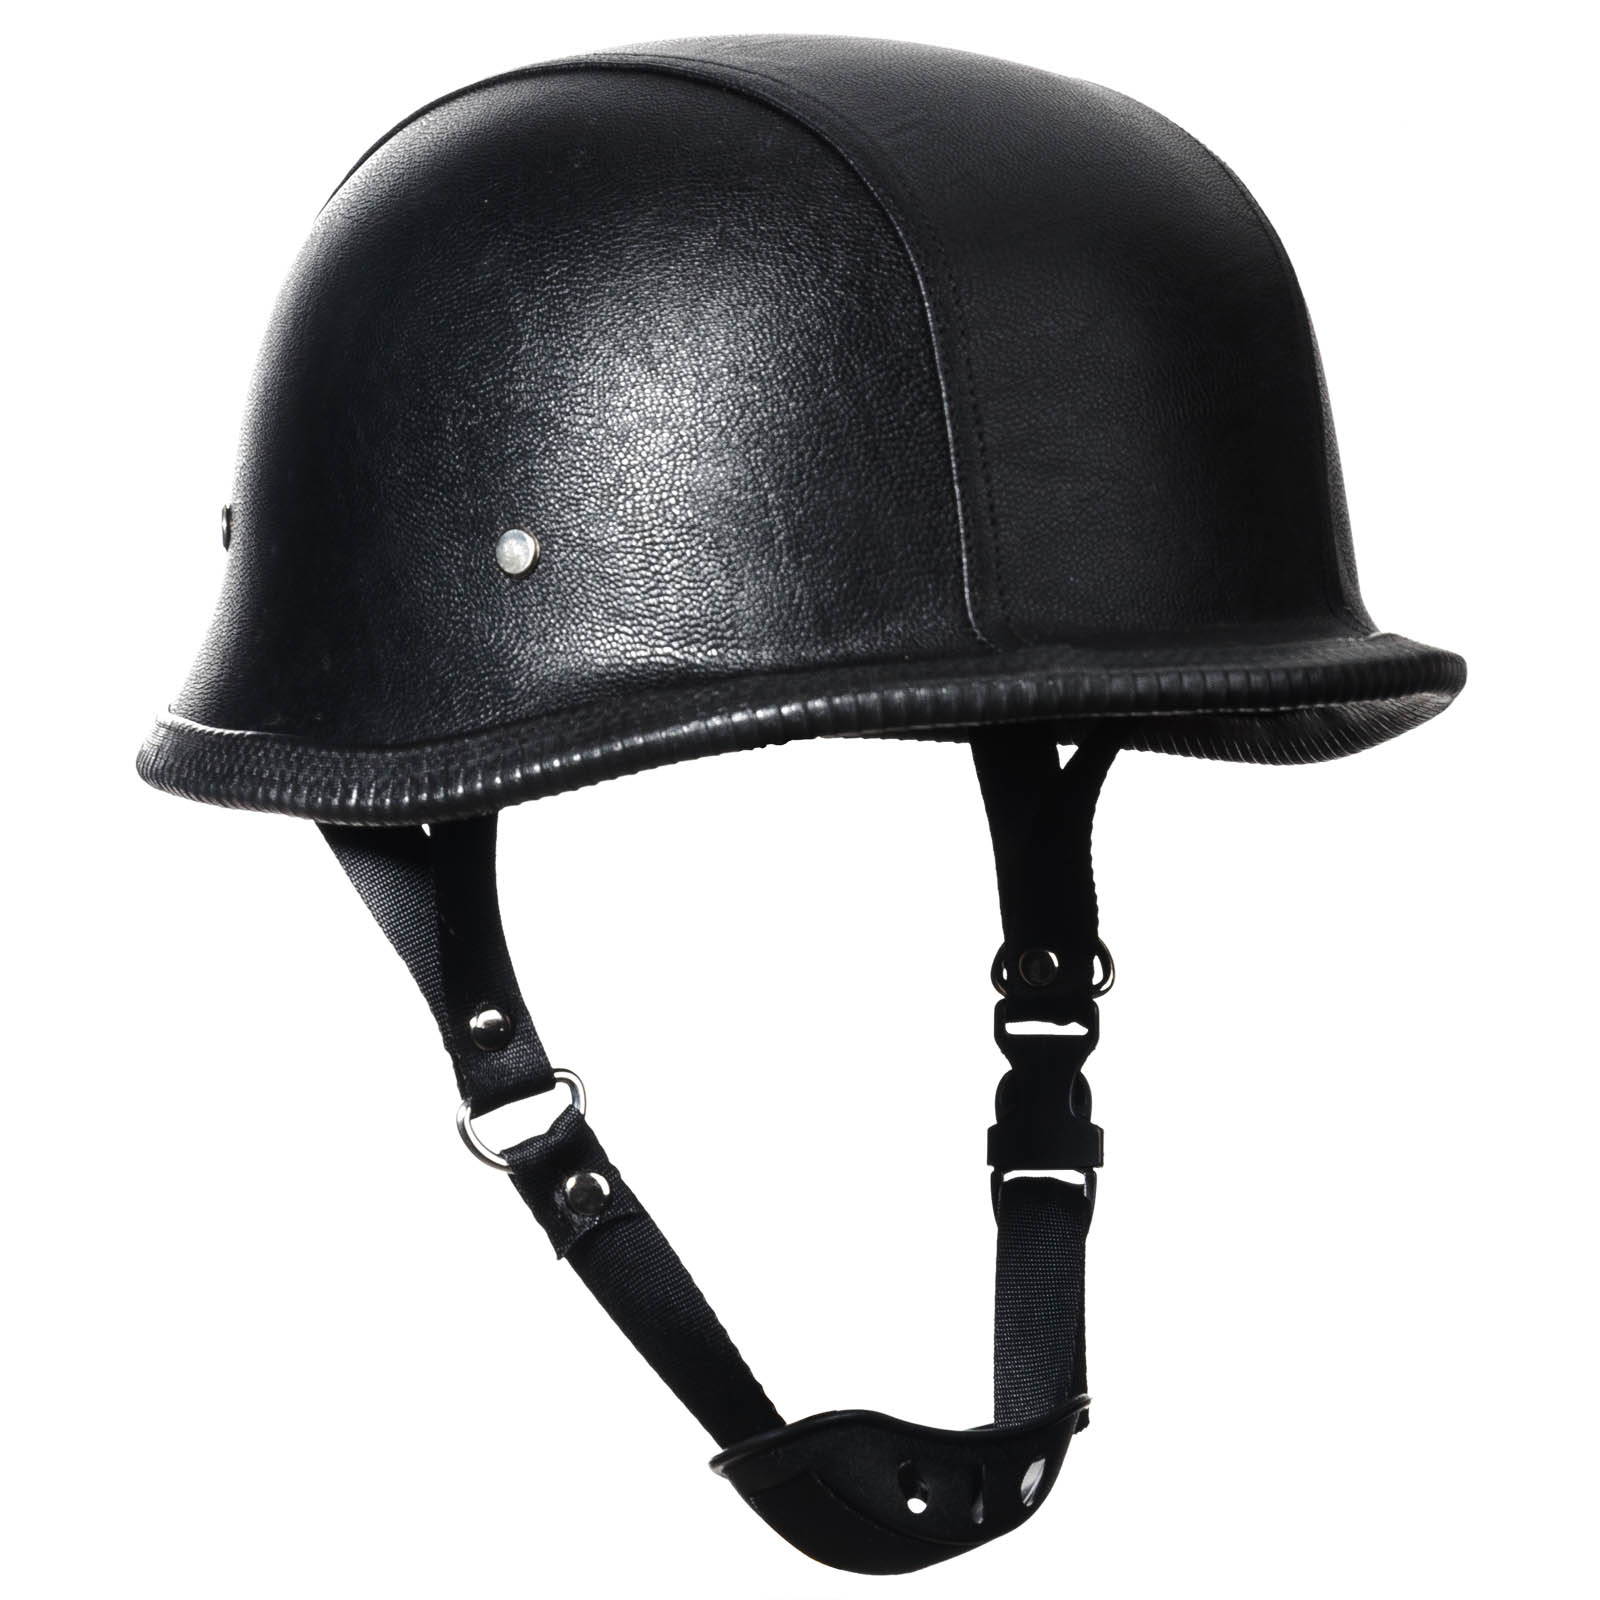 Mayitr 2017 Black DOT German WWII Style Padded Motorcycle Half Helmet leather sponge For Chopper Motorcycle Biker Pilot L